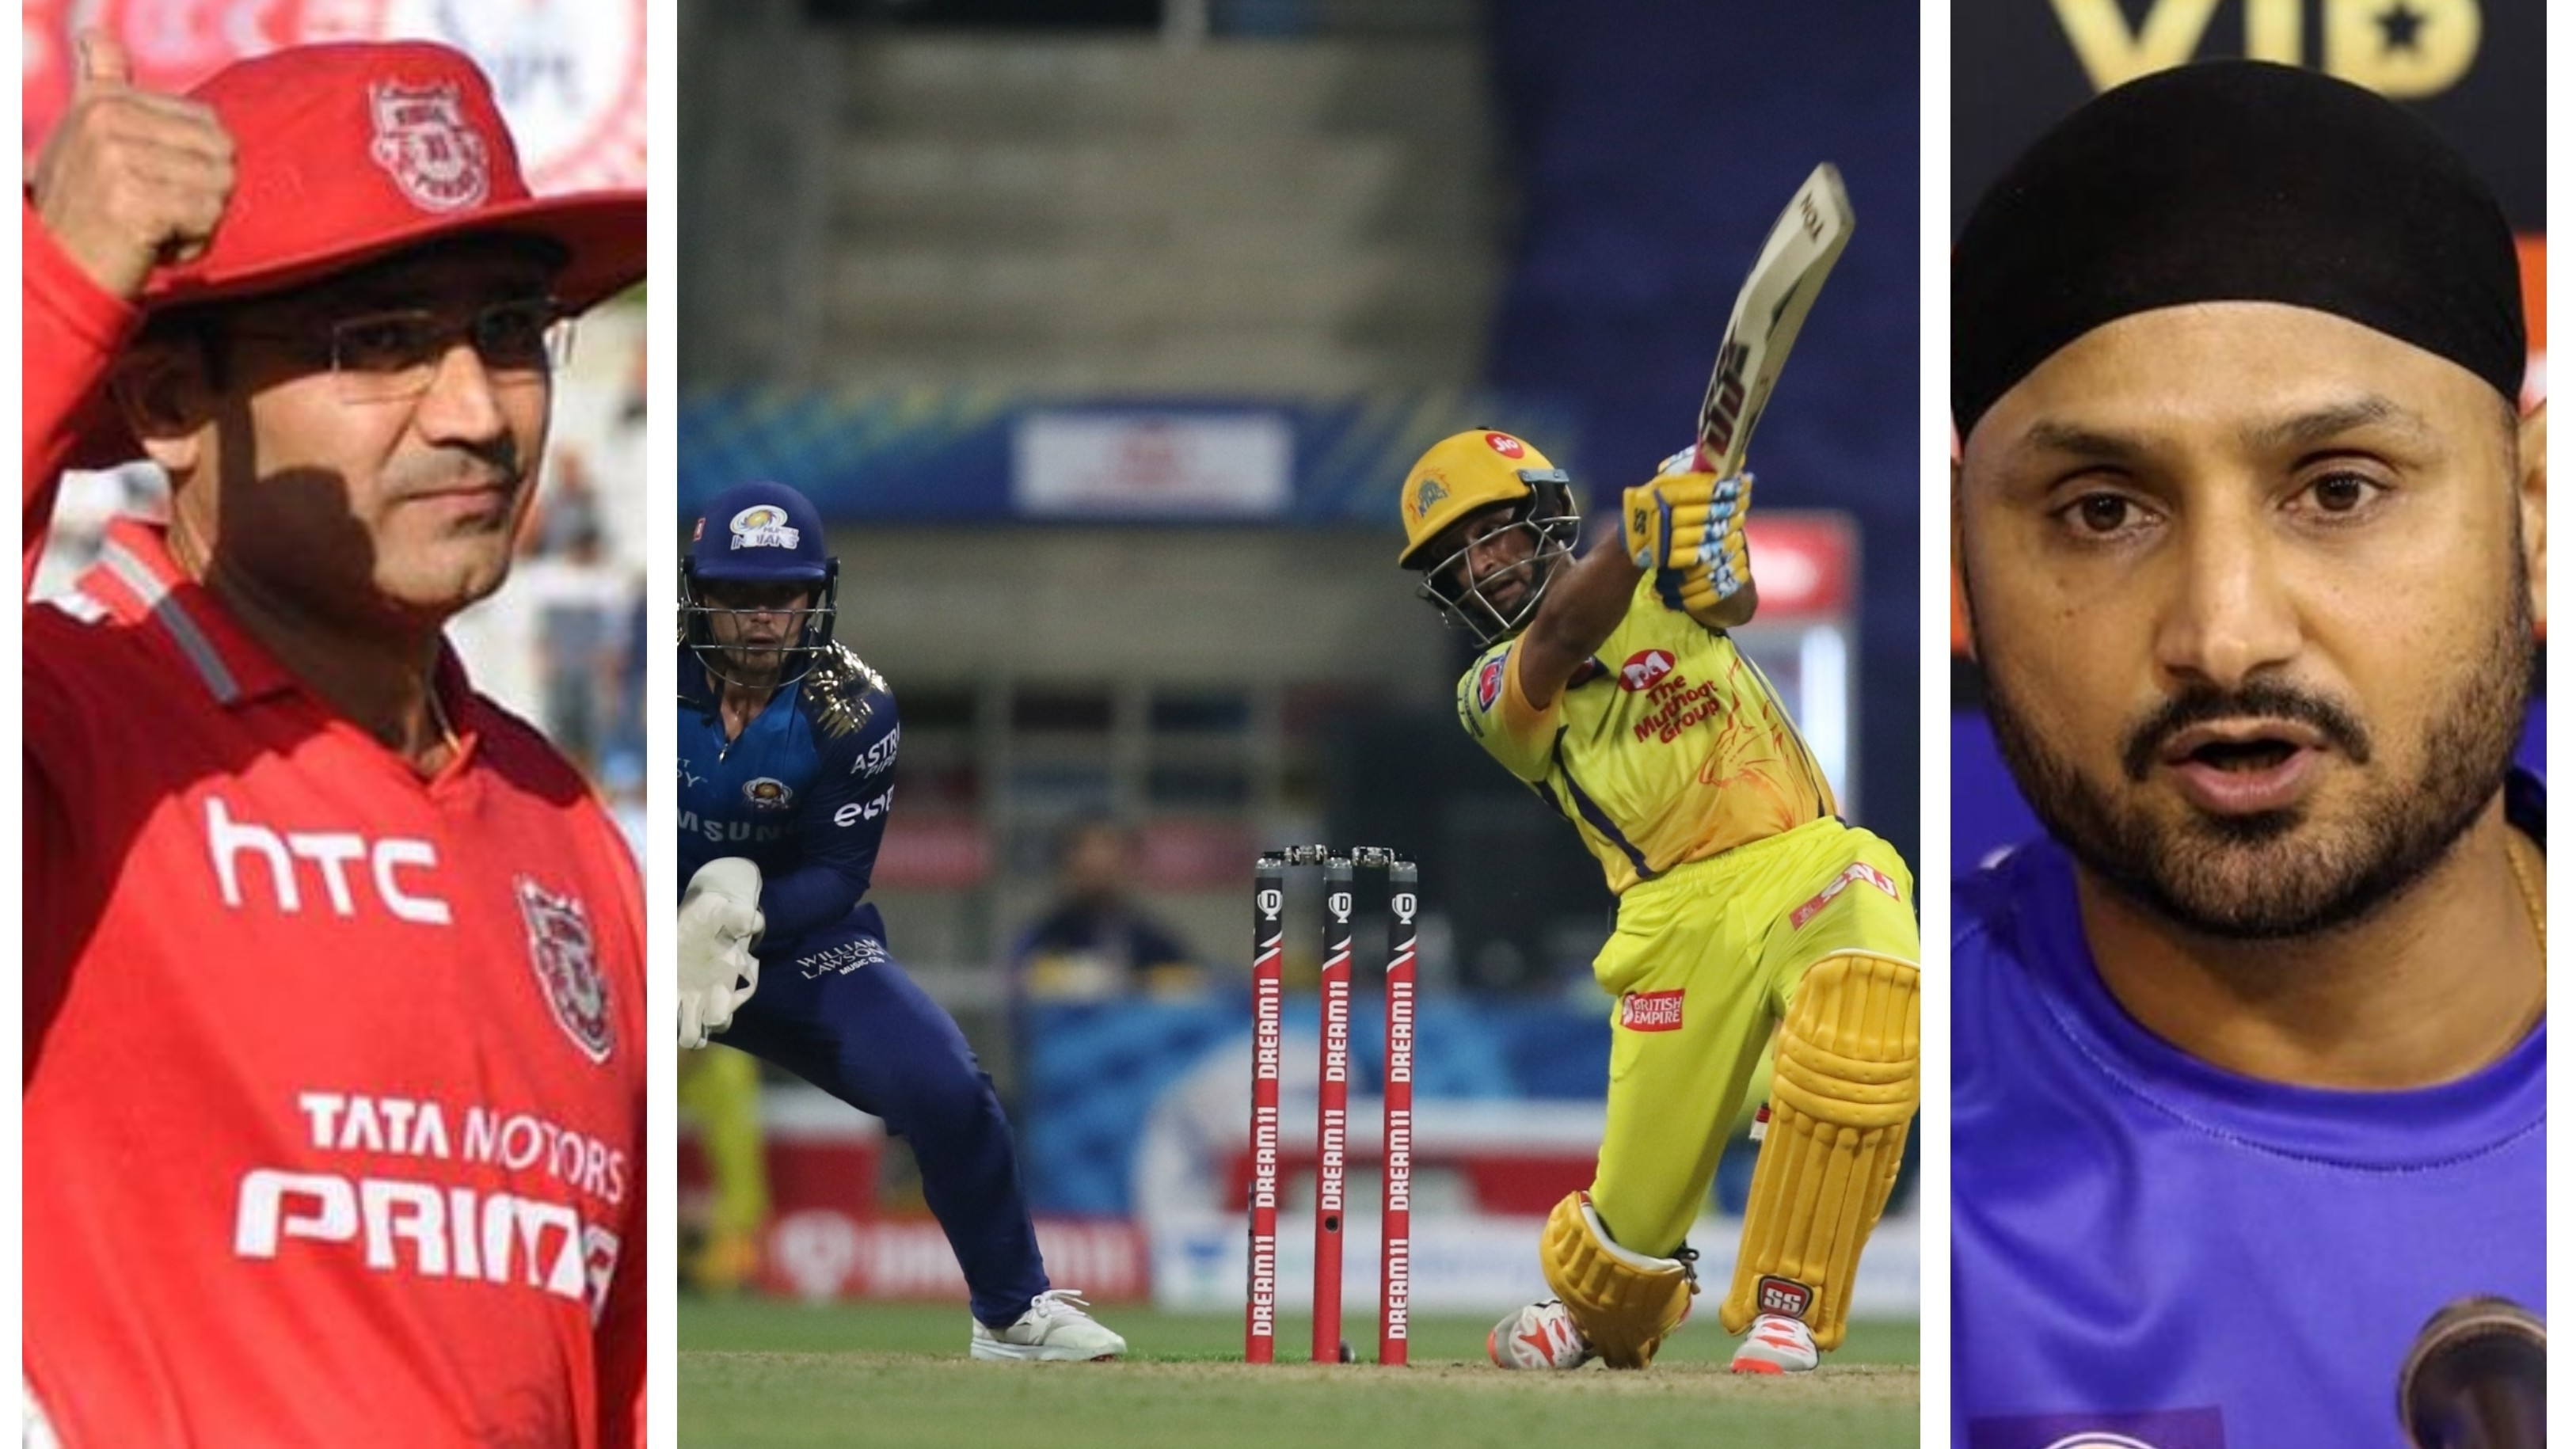 IPL 2020: Cricket fraternity reacts as CSK pulls off clinical chase against MI in the tournament opener